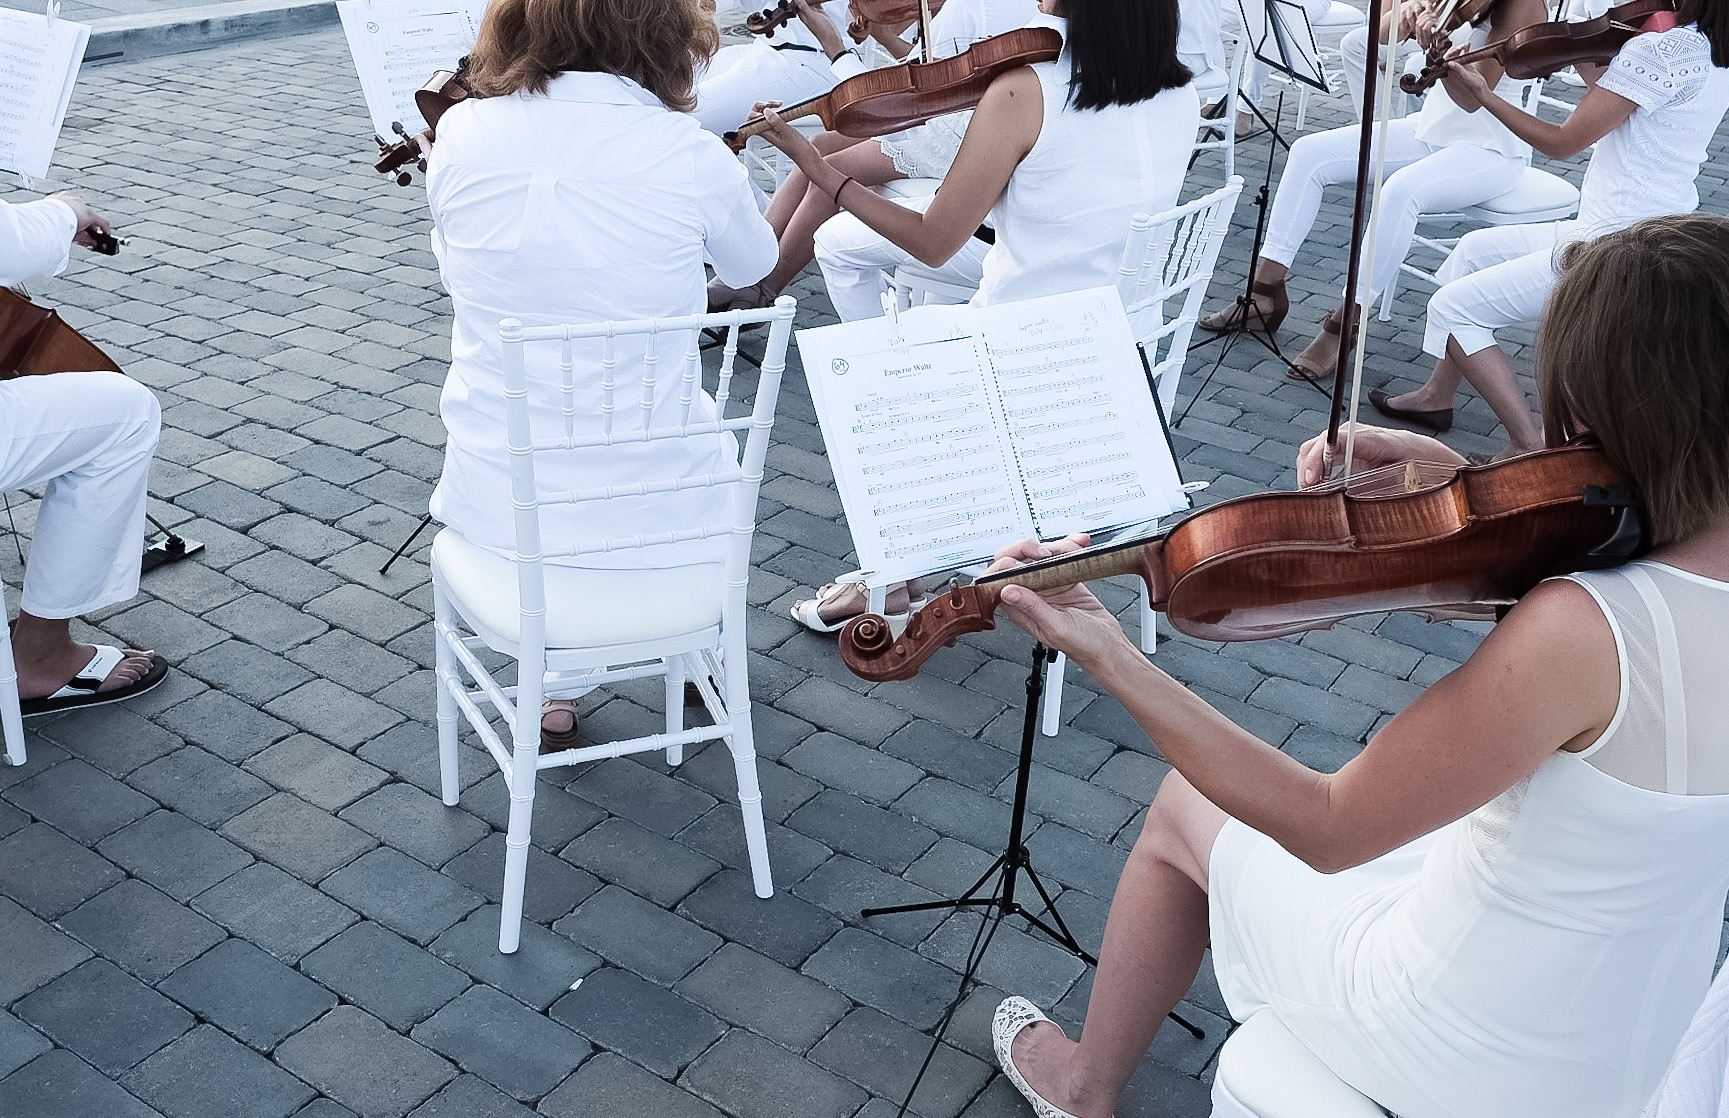 Live violinists romanced the crowd.